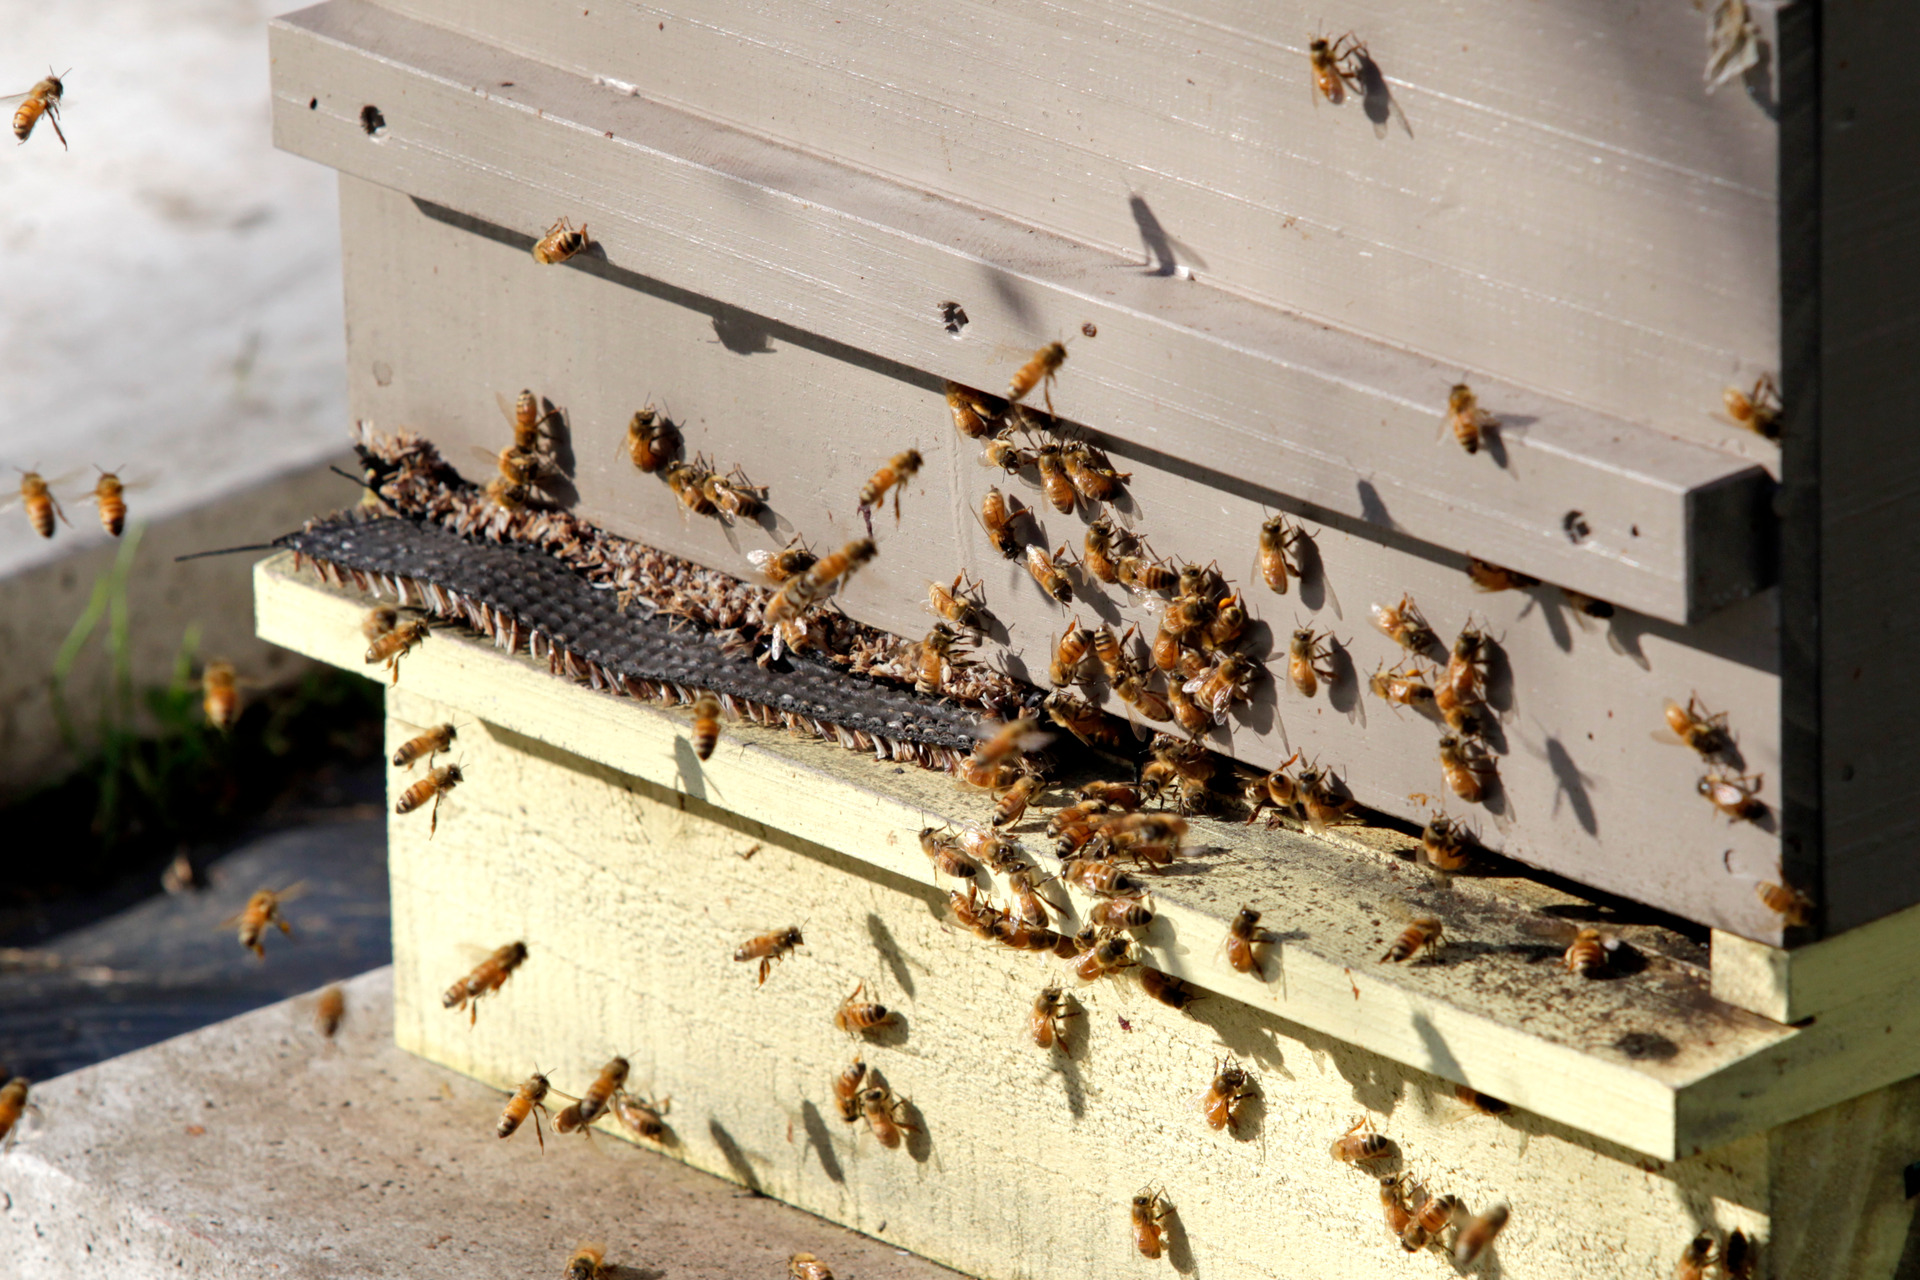 80 beehive boxes stolen: Search for thief in Napier